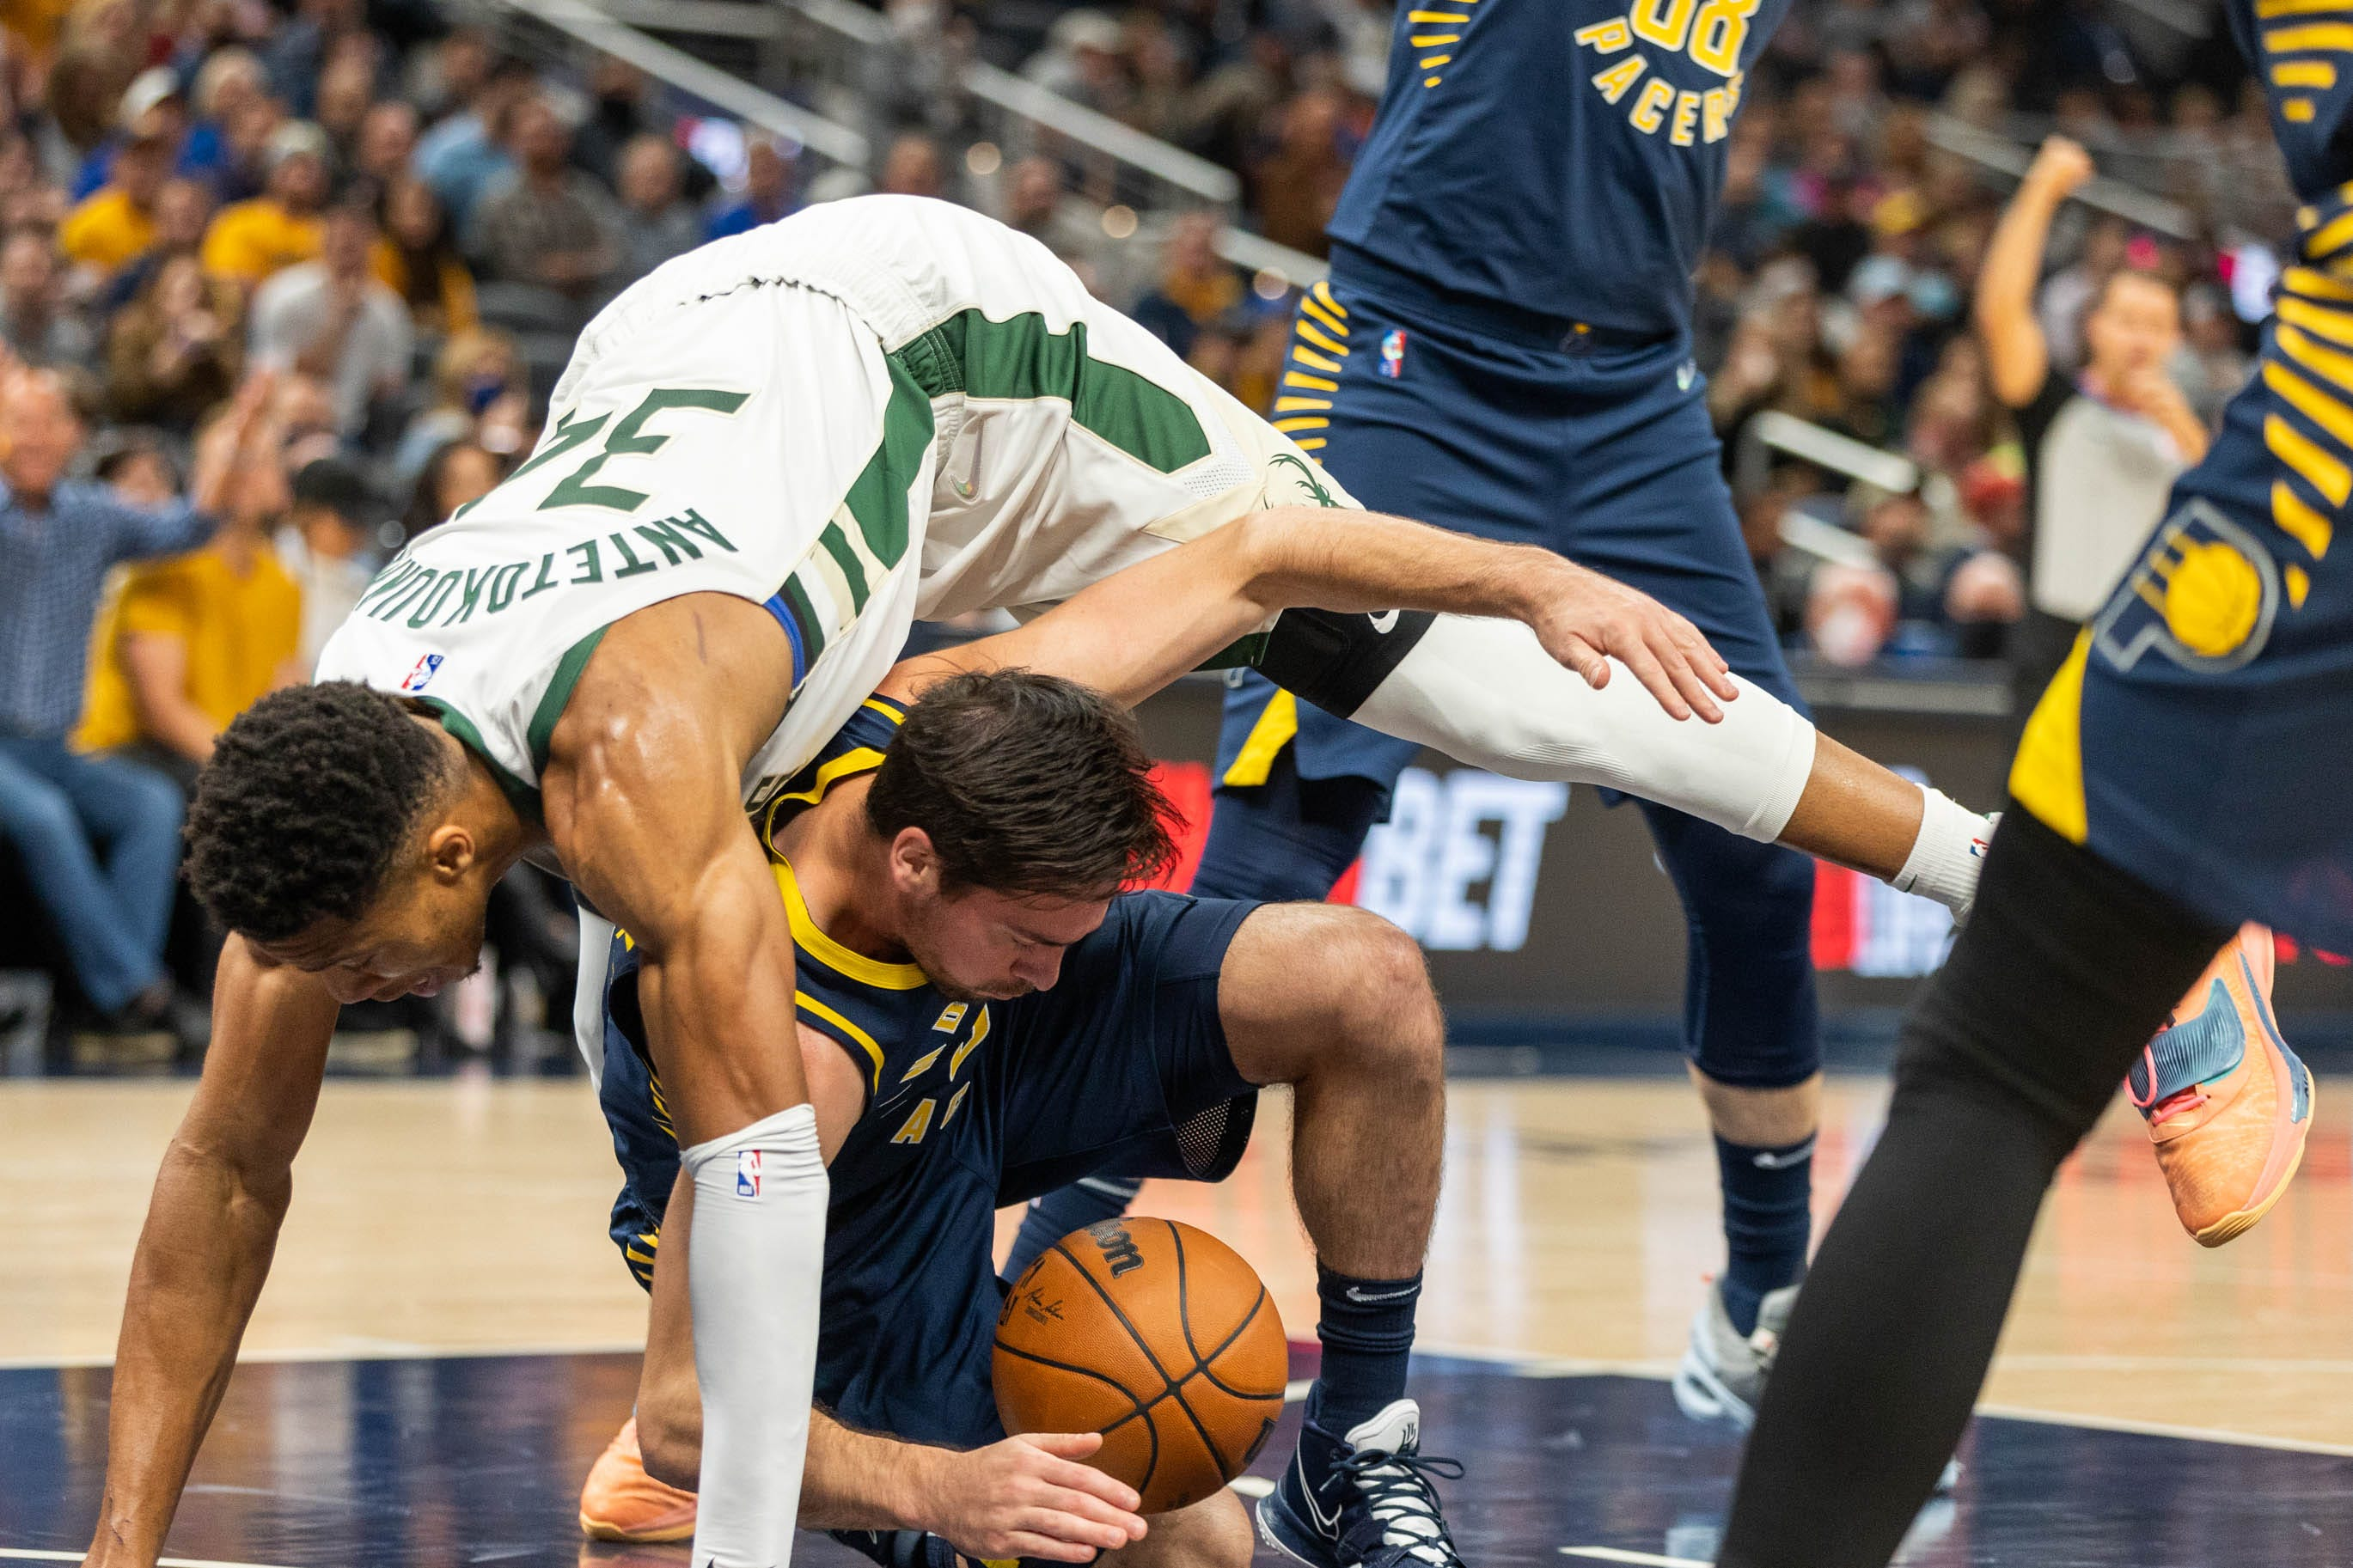 Five takeways from NBA champion Bucks' road win over Pacers